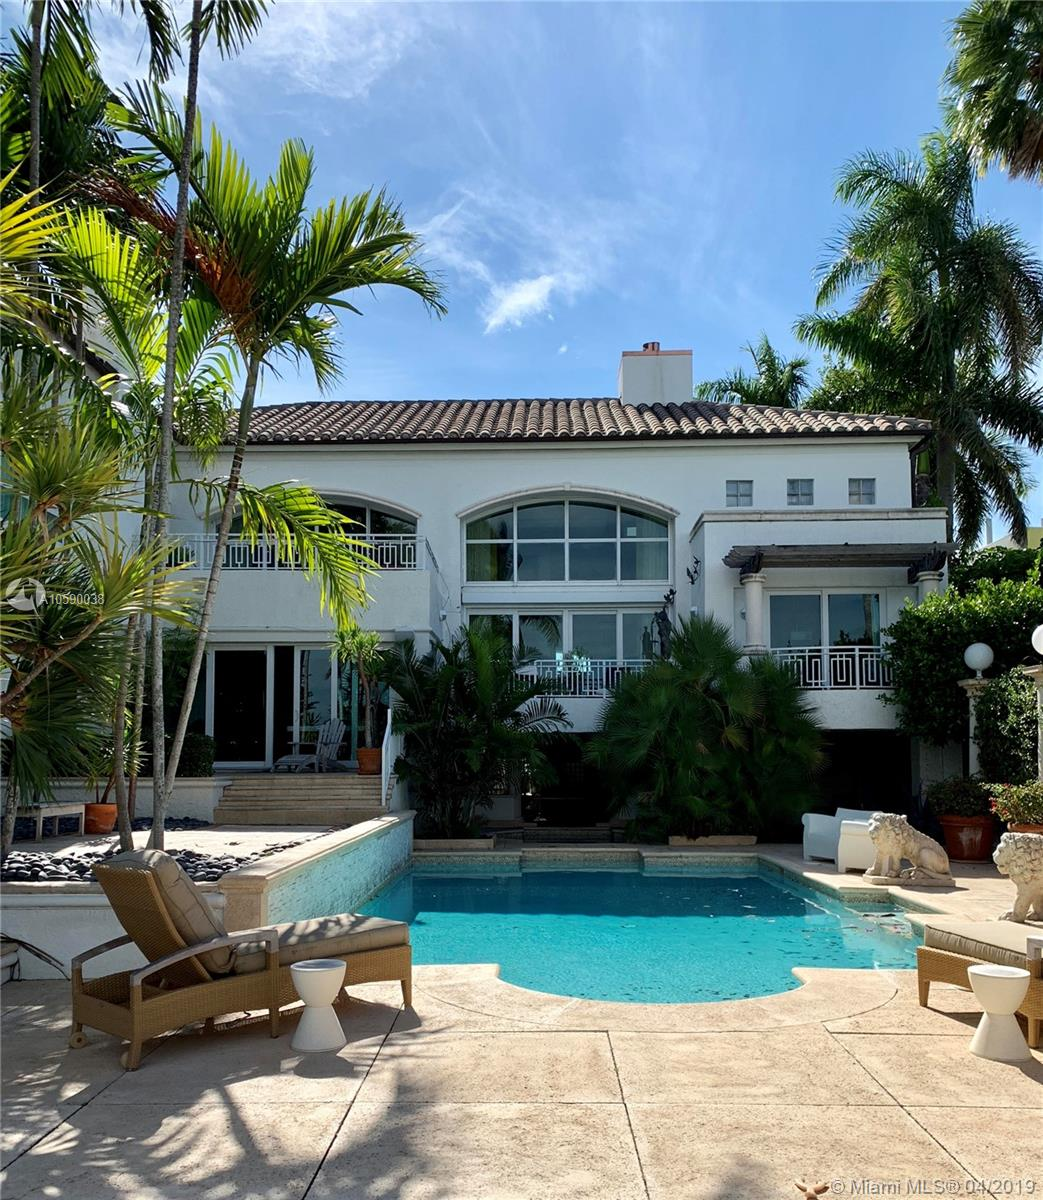 Houses To Rent In Miami Beach: Palm Island Real Estate - Royal Realtors